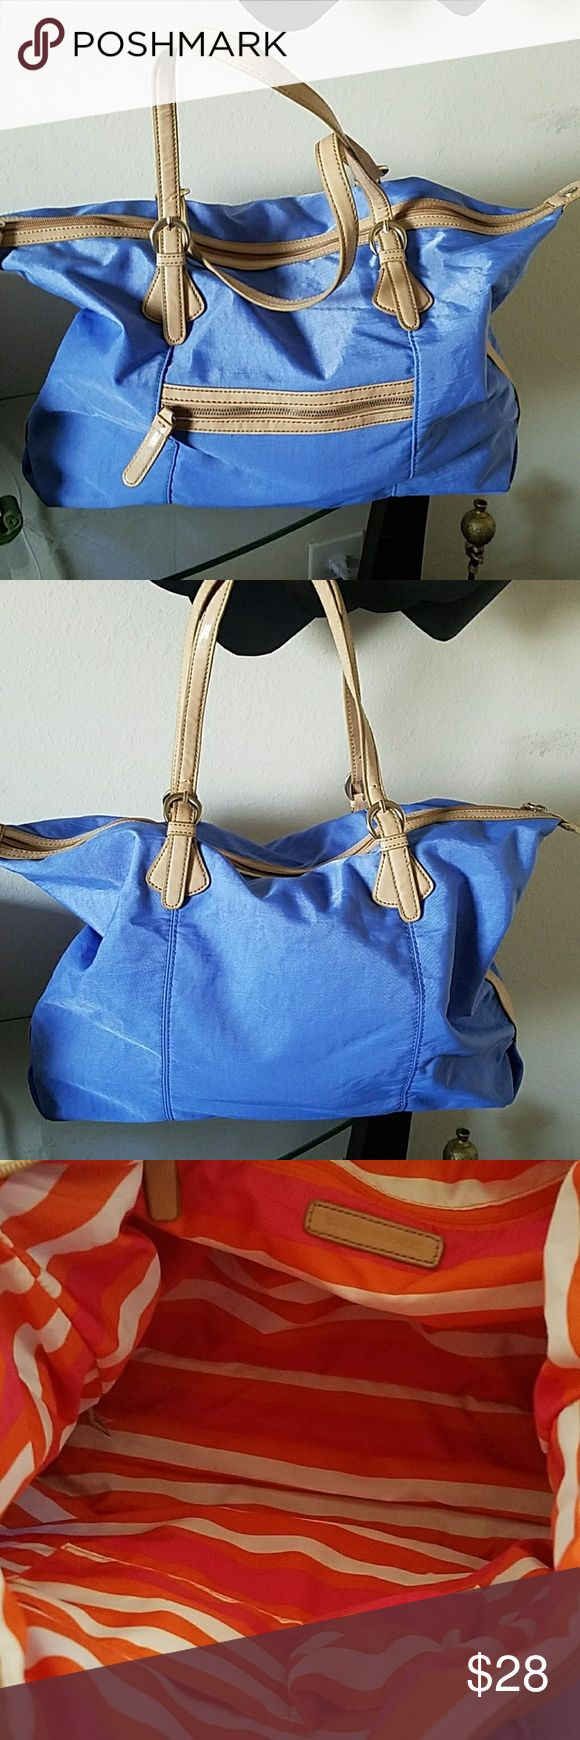 Banana Republic Tote This Banana Republic tote is in good used condition.. Used twice and then stored; handles are in good condition  Zippers are in working condition... No loose threads, stains, snags or holes.... Approximately length of bag is taken ... No Trades please! Banana Republic Bags Totes